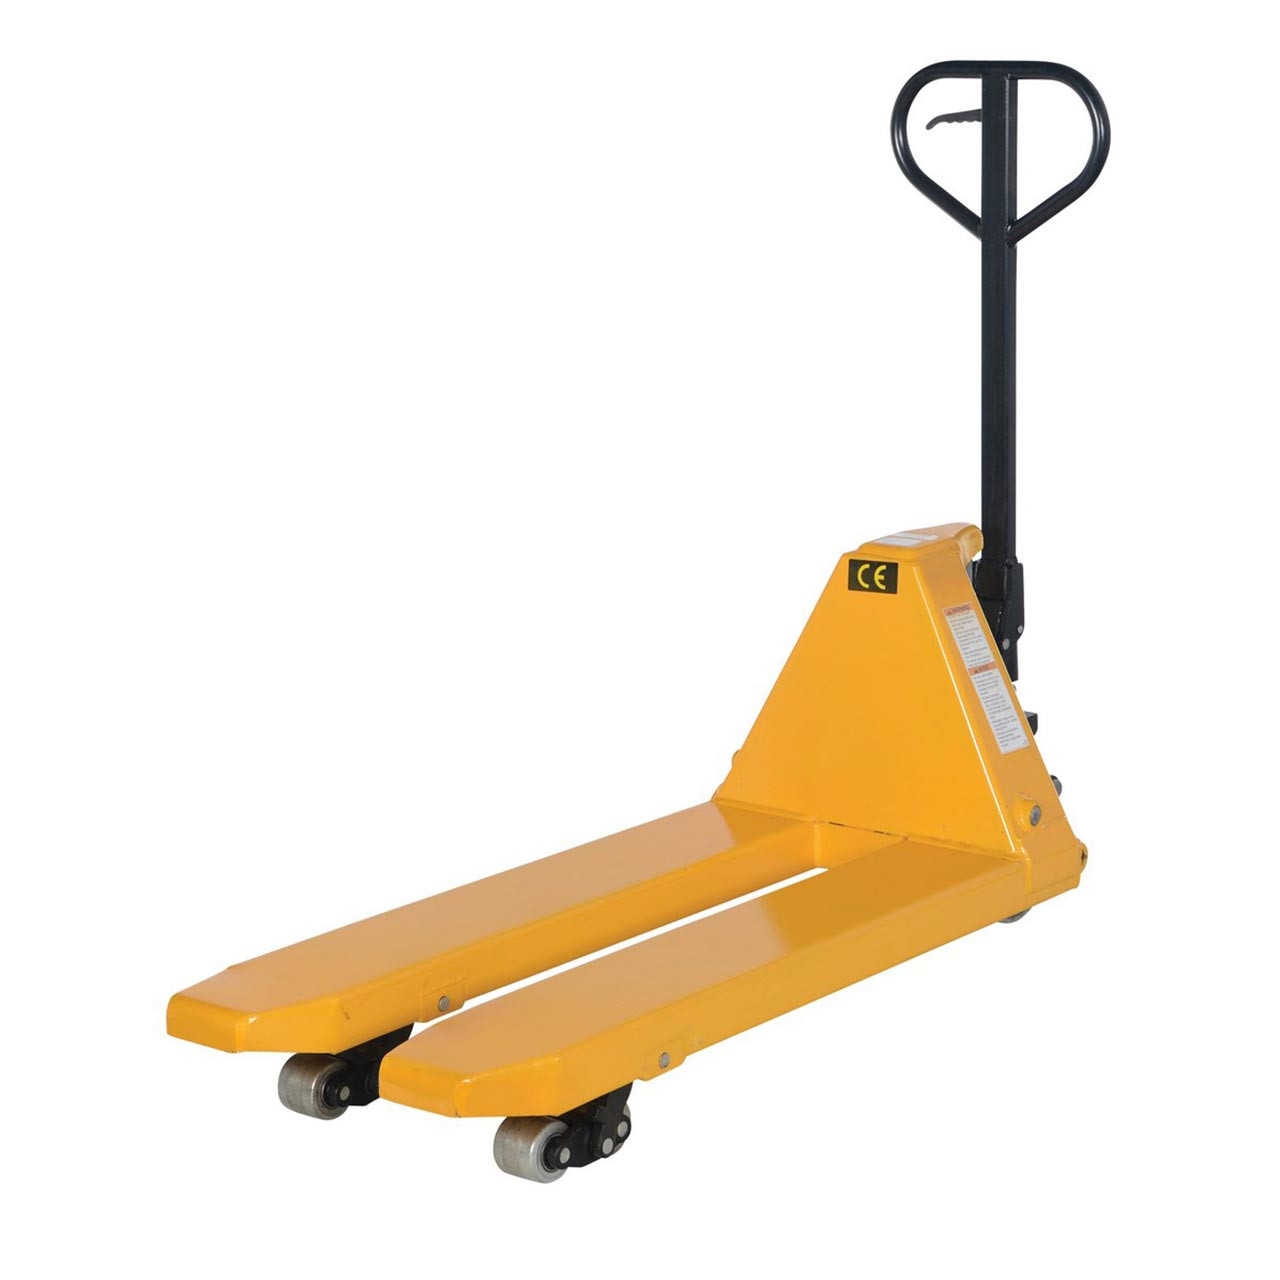 Full featured pallet jack has a capacity of 10,000 lb.